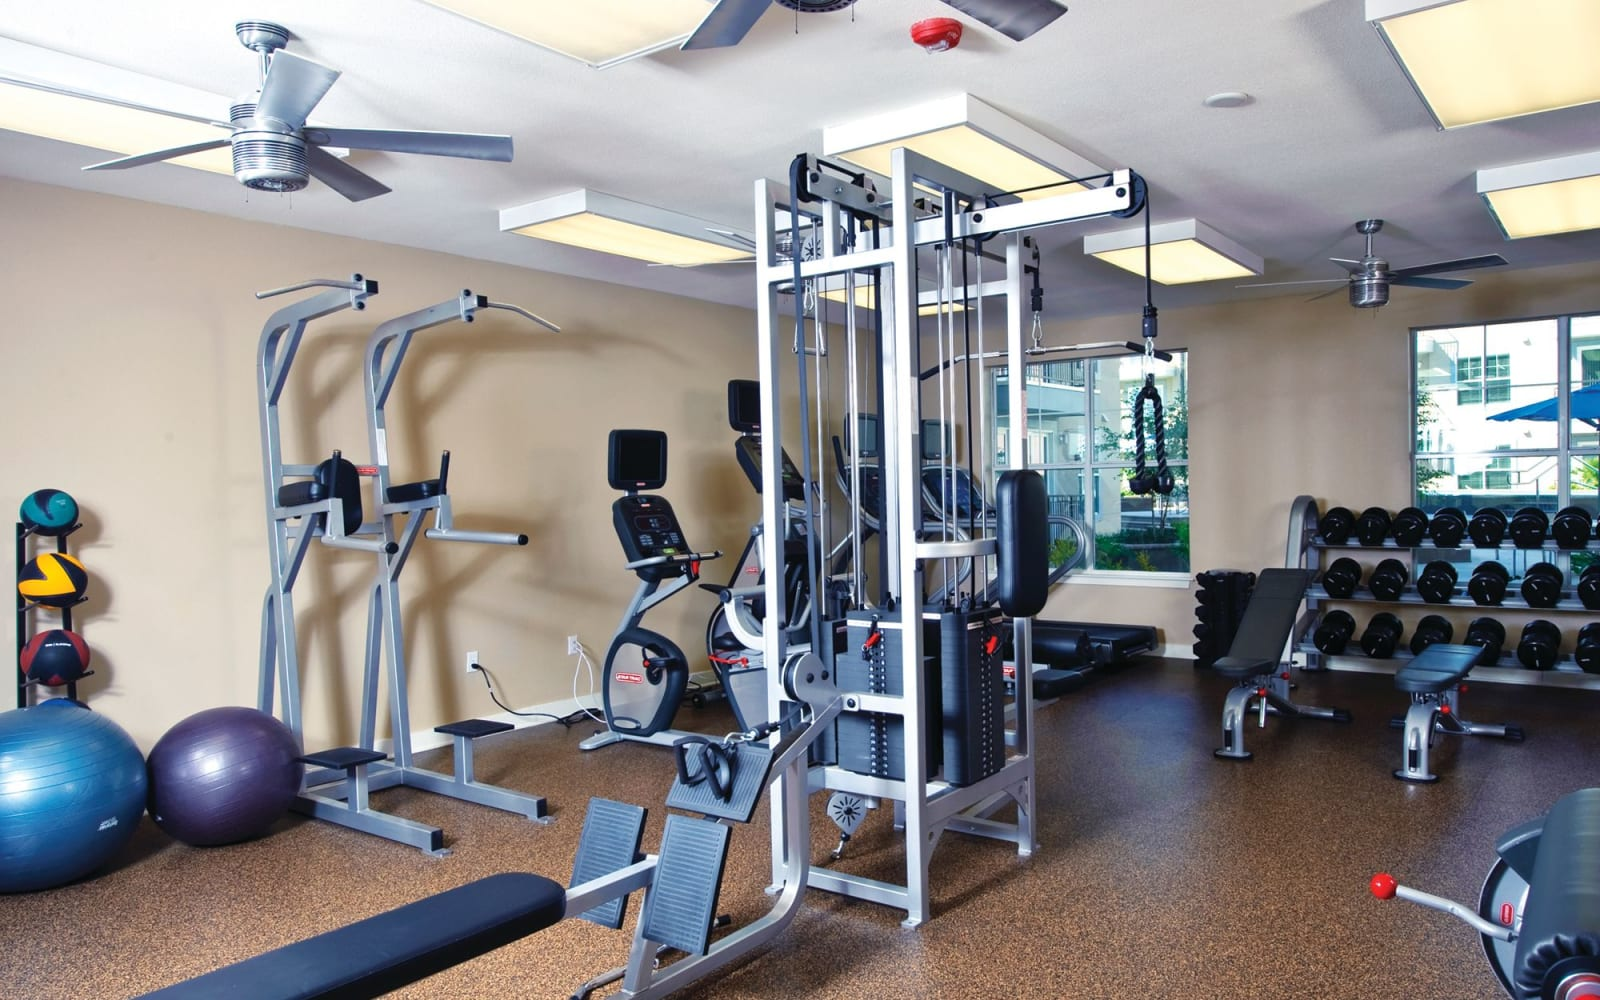 Gym equipment at Crescent Club in New Orleans, Louisiana